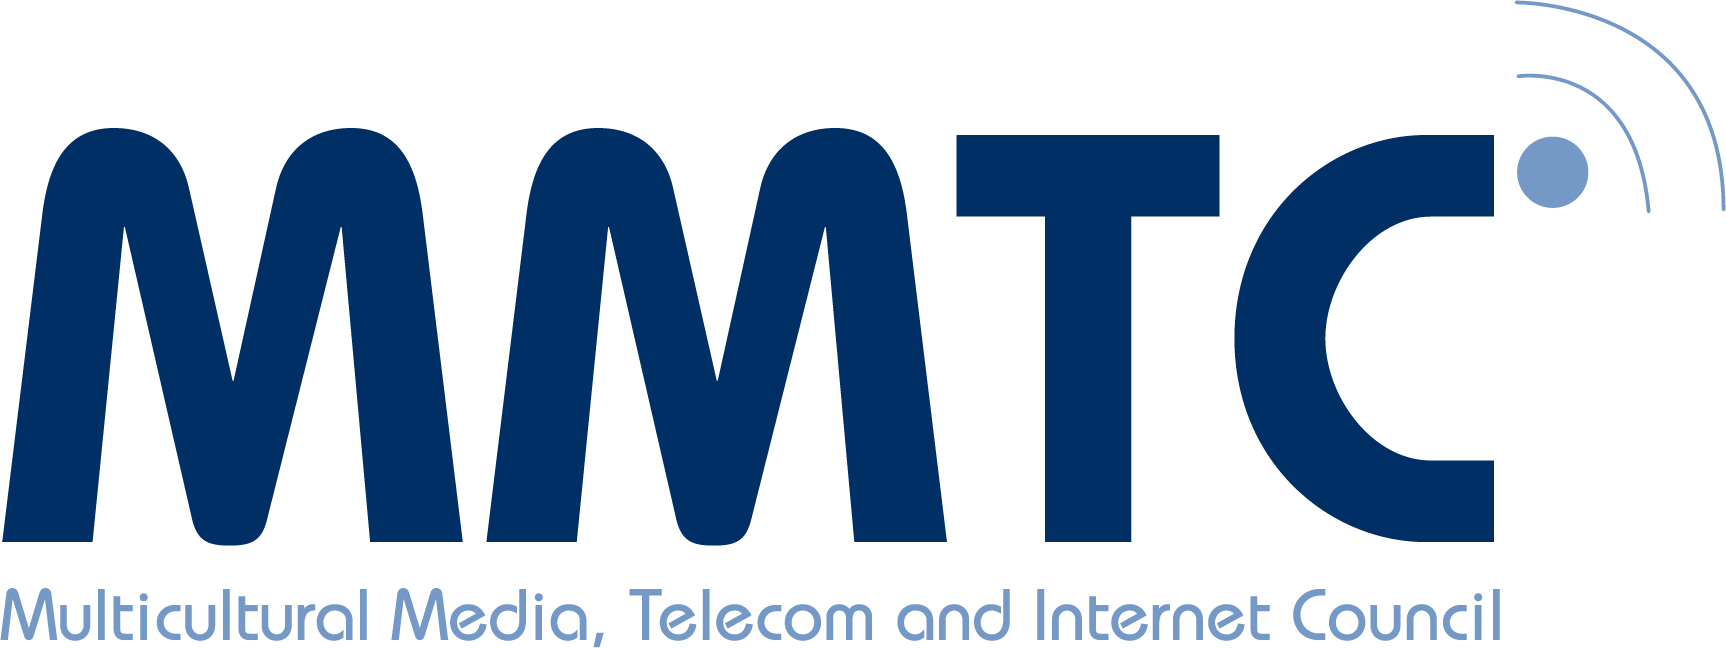 Multicultural Media, Telecom and Internet Council